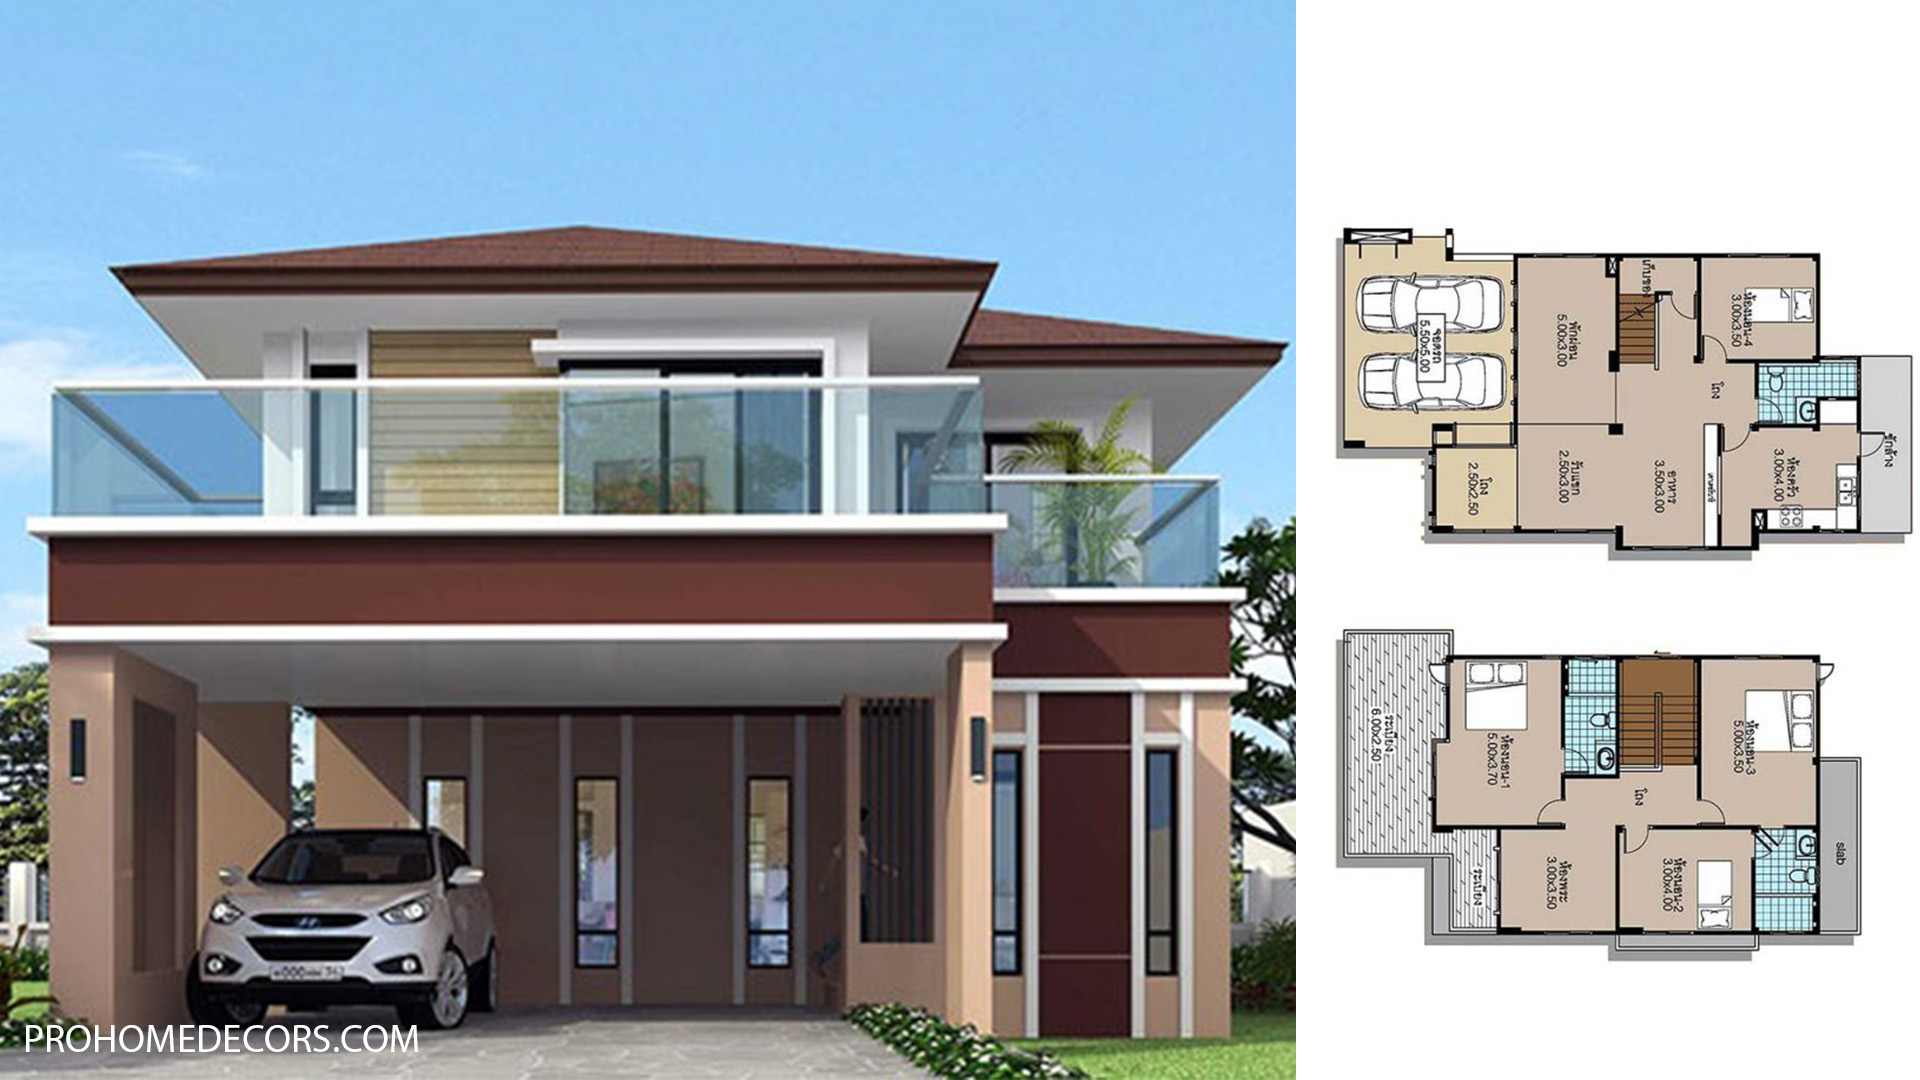 House plans 8×13 with 4 Beds